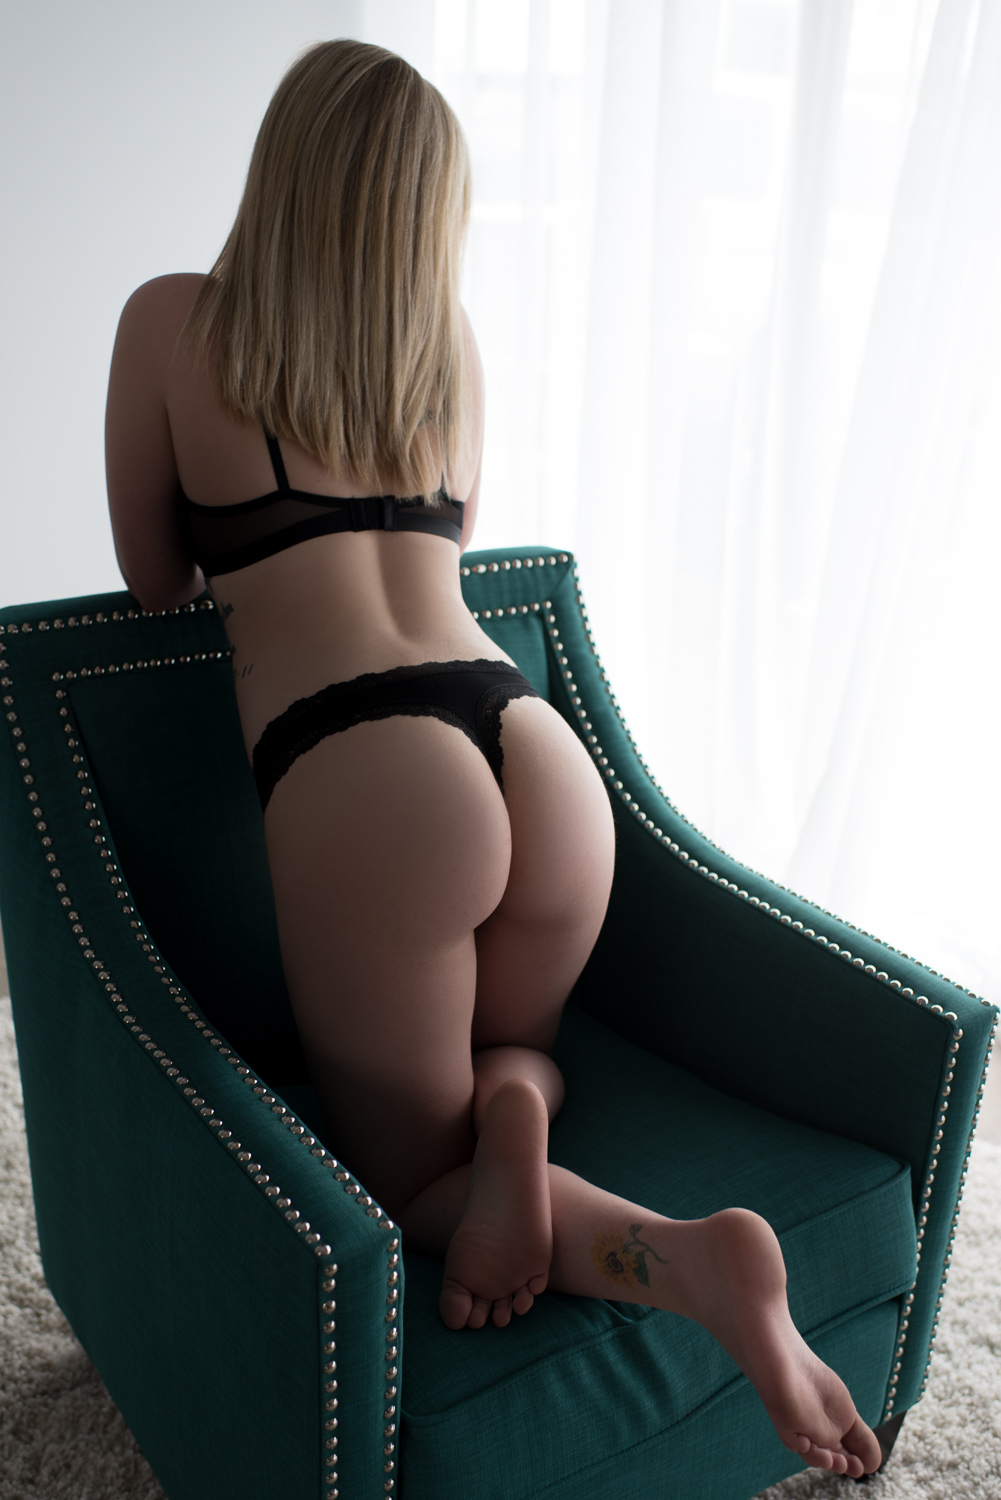 Booty boudoir pose - D. Phillips Photography